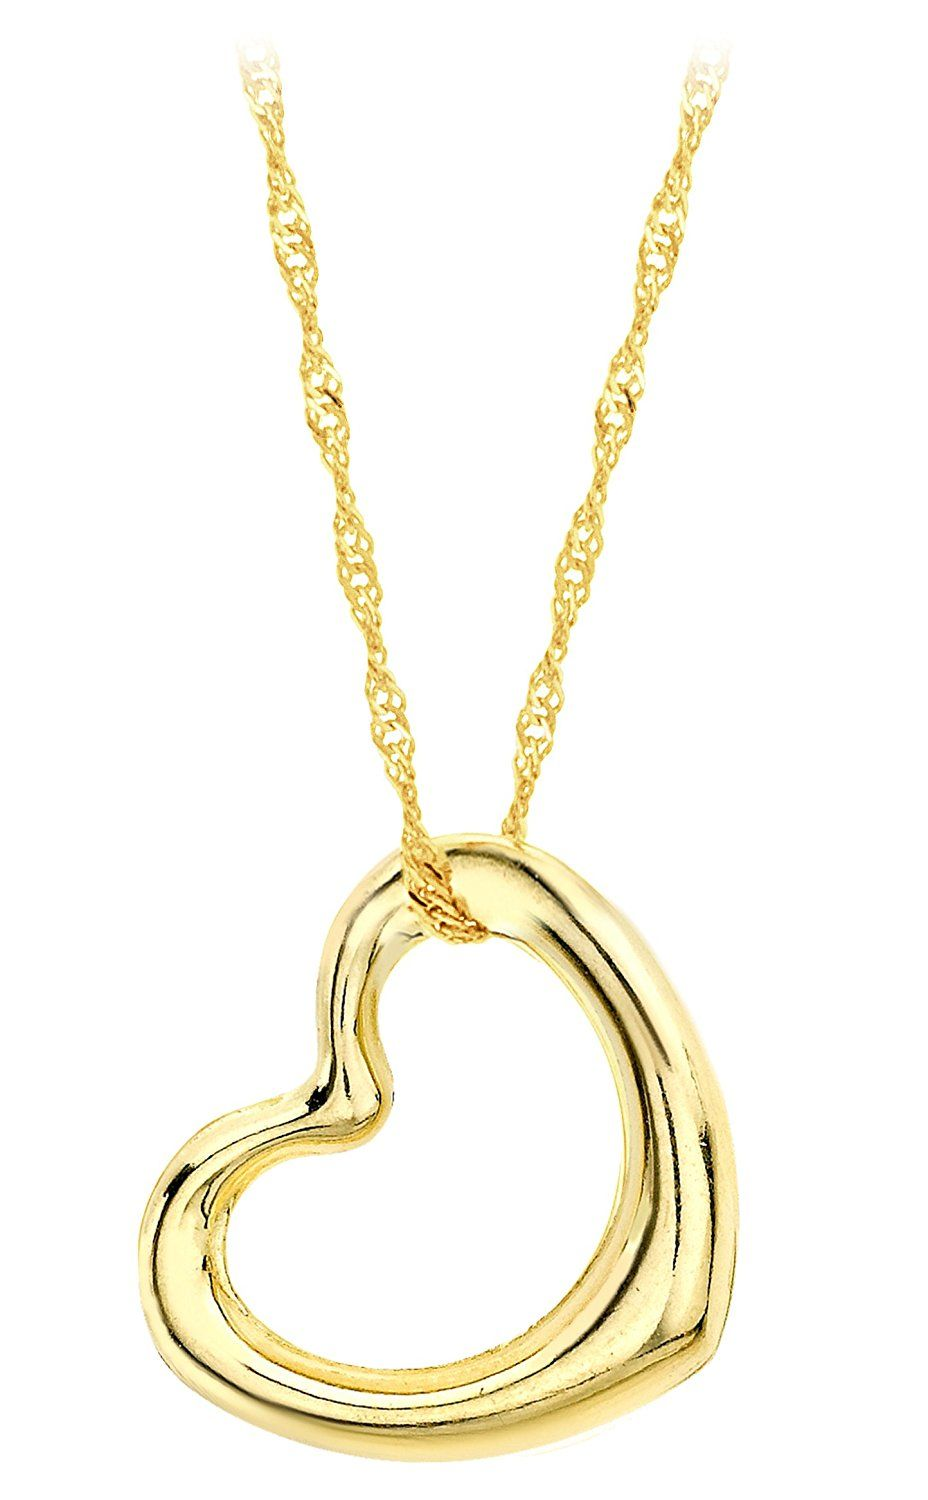 Carissima Gold Women's 9 ct White Gold Twisted Curb Chain fZk2SBUG